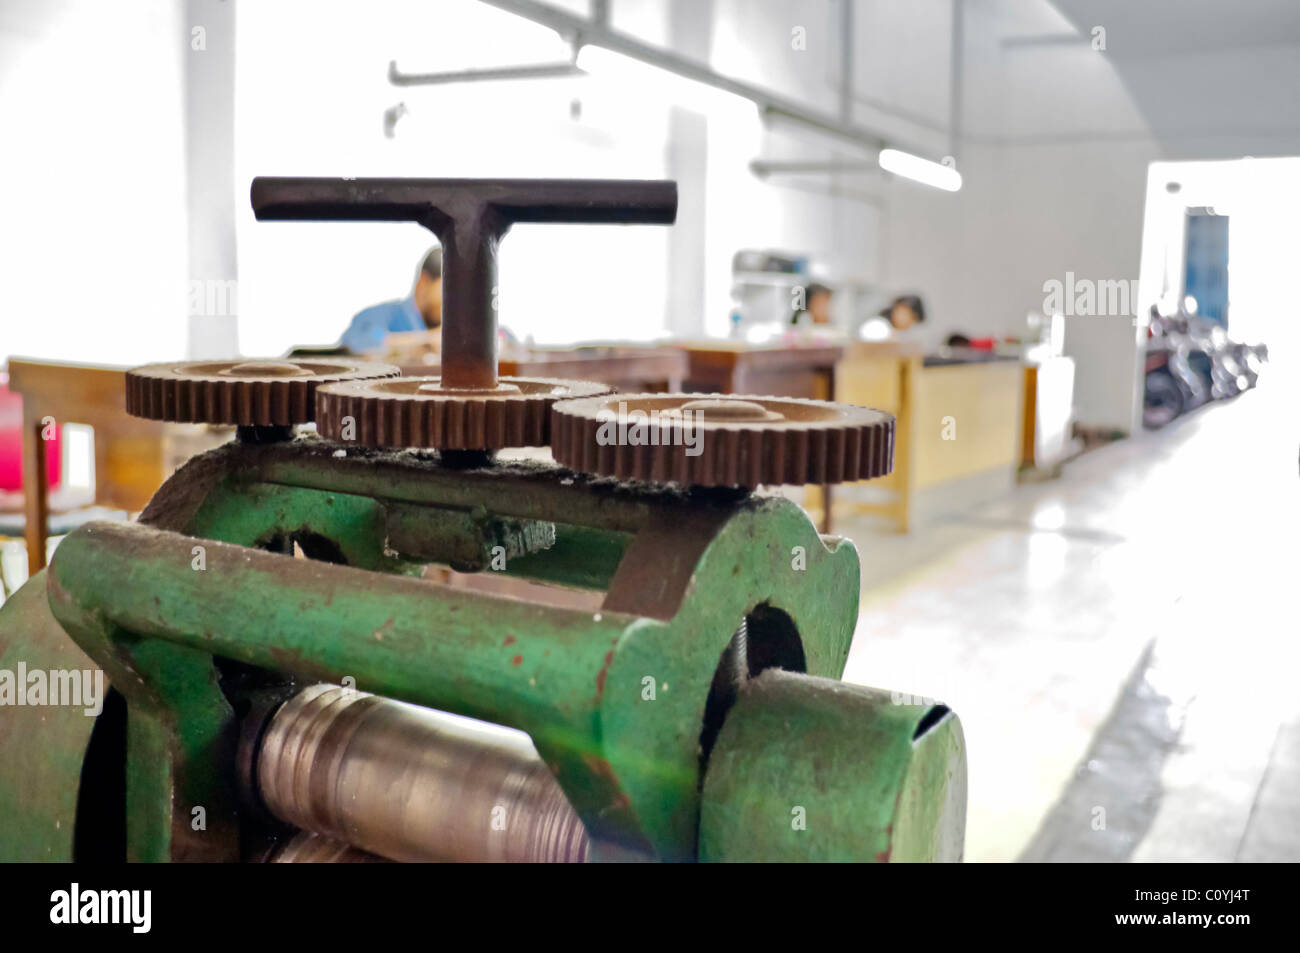 Industrial lathe machine in a workshop industry - Stock Image